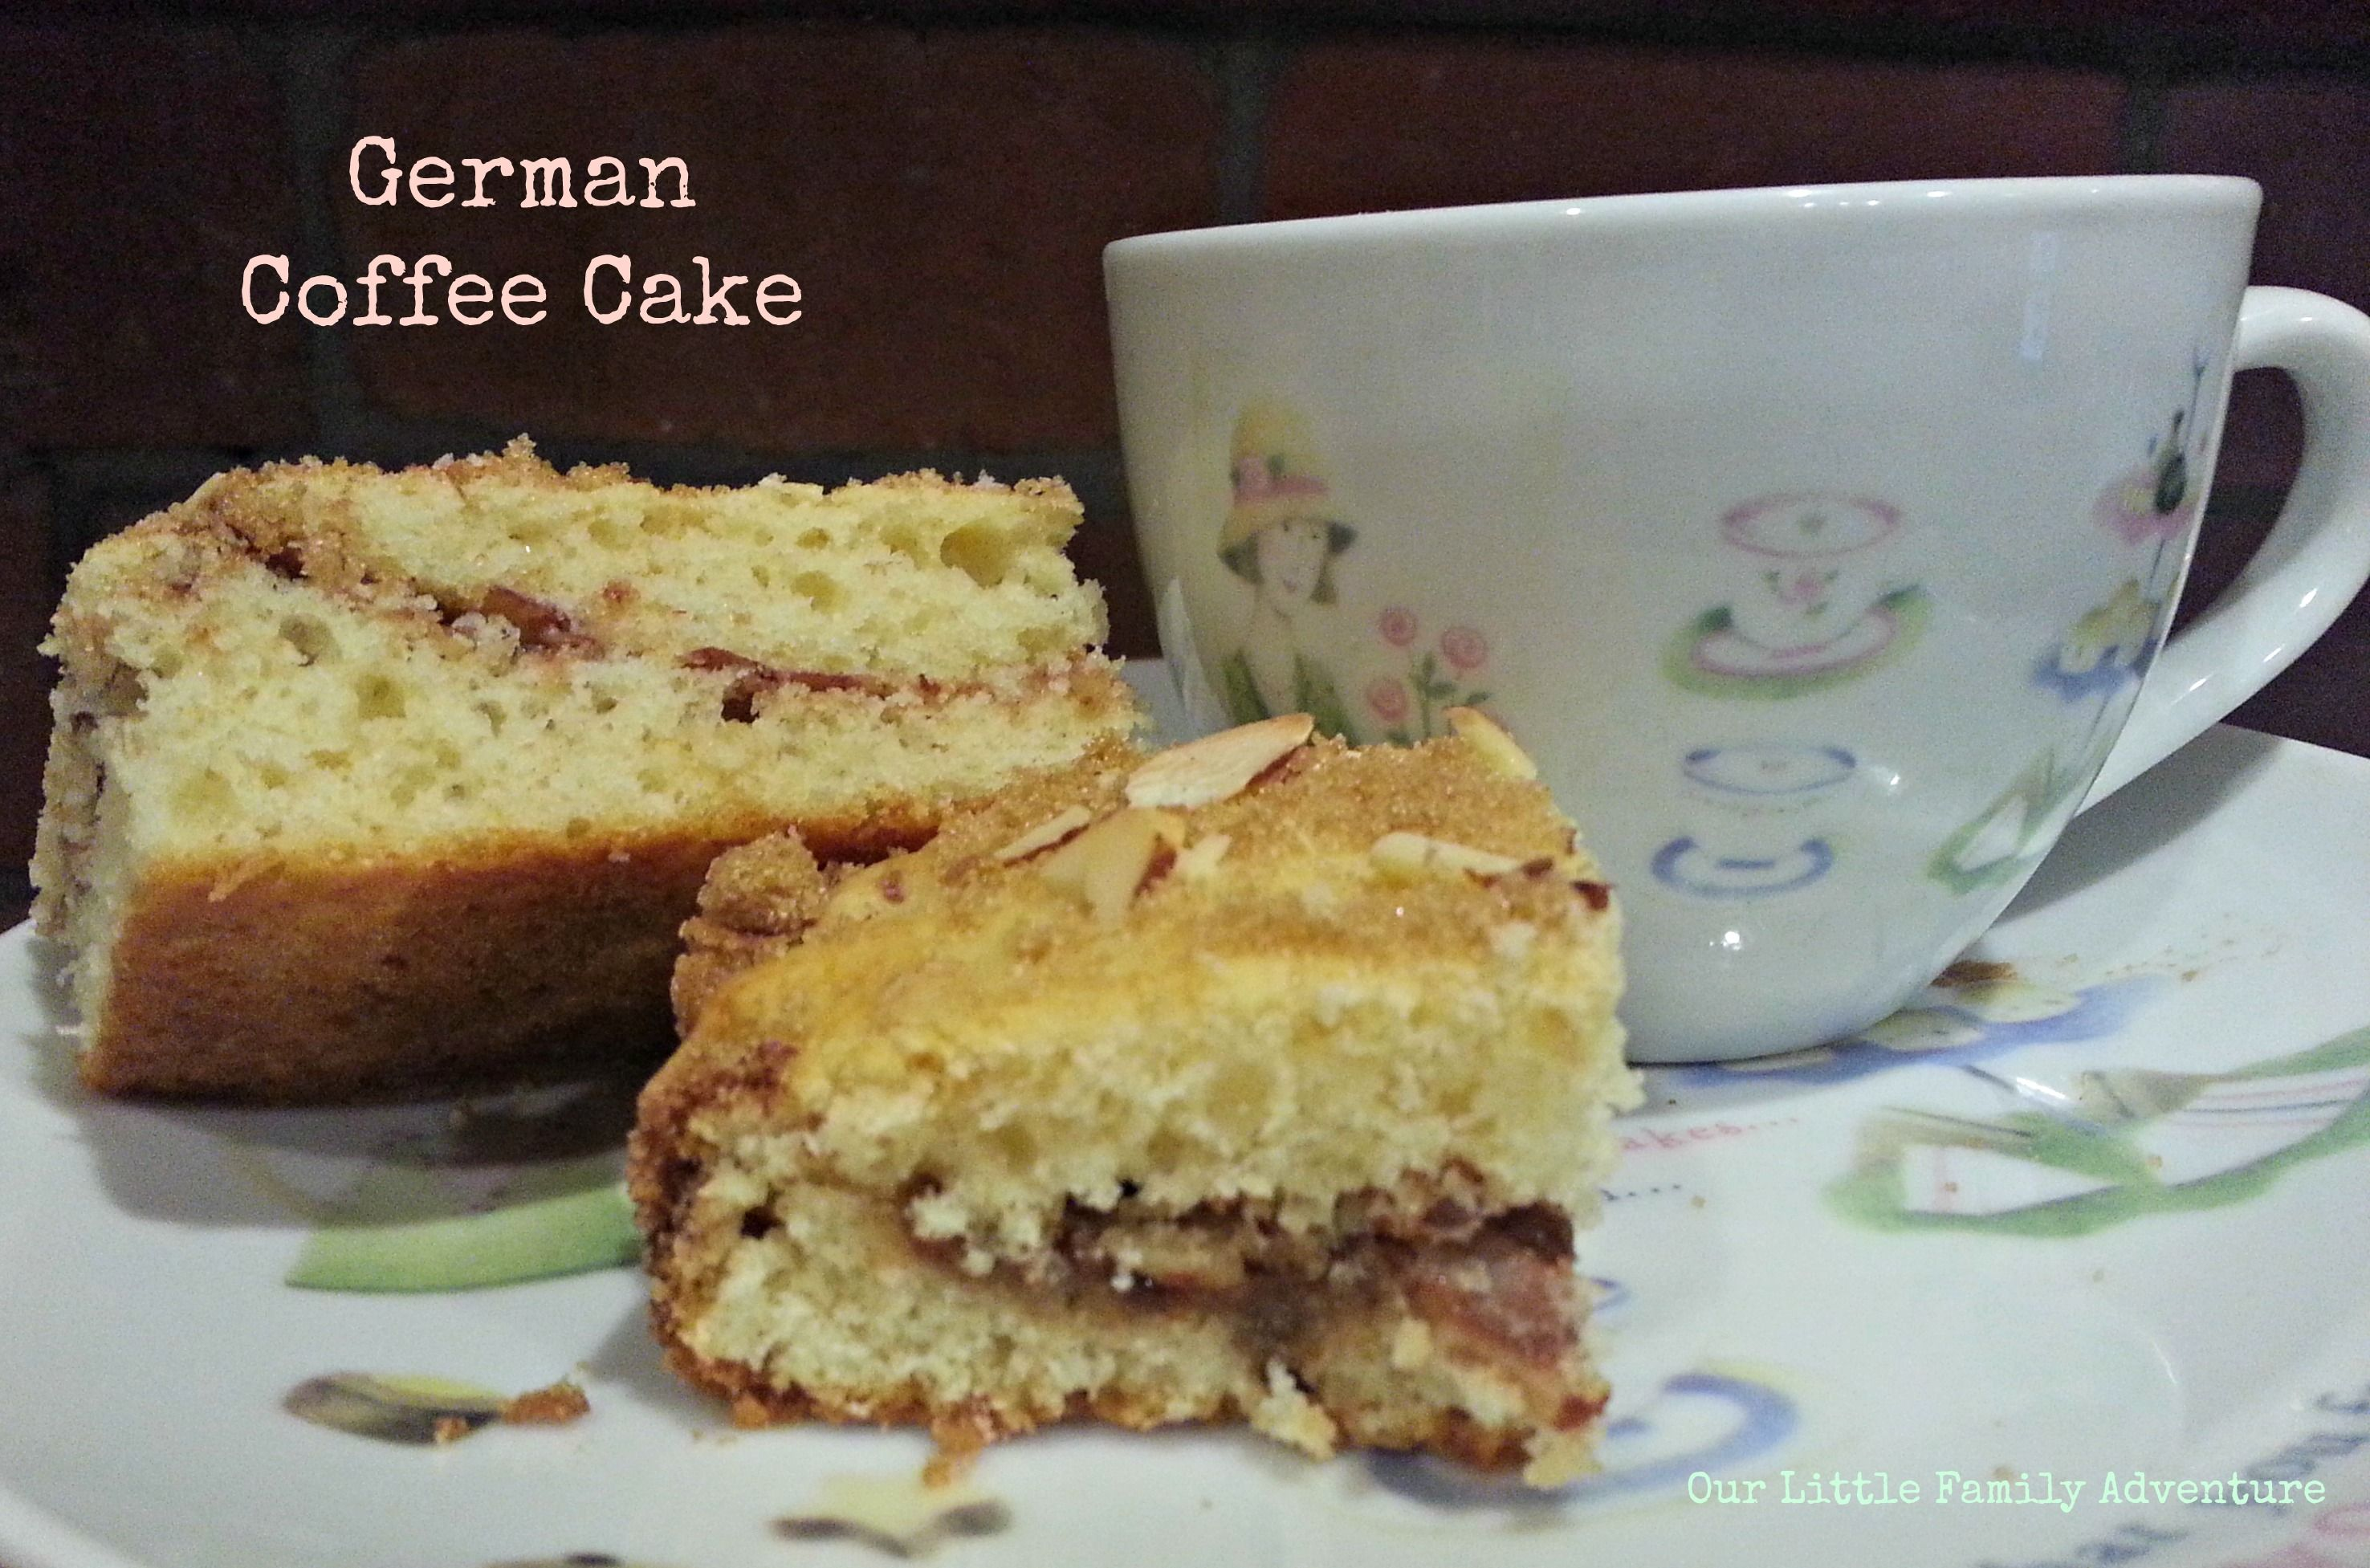 German Coffee Cake - Little Family Adventure